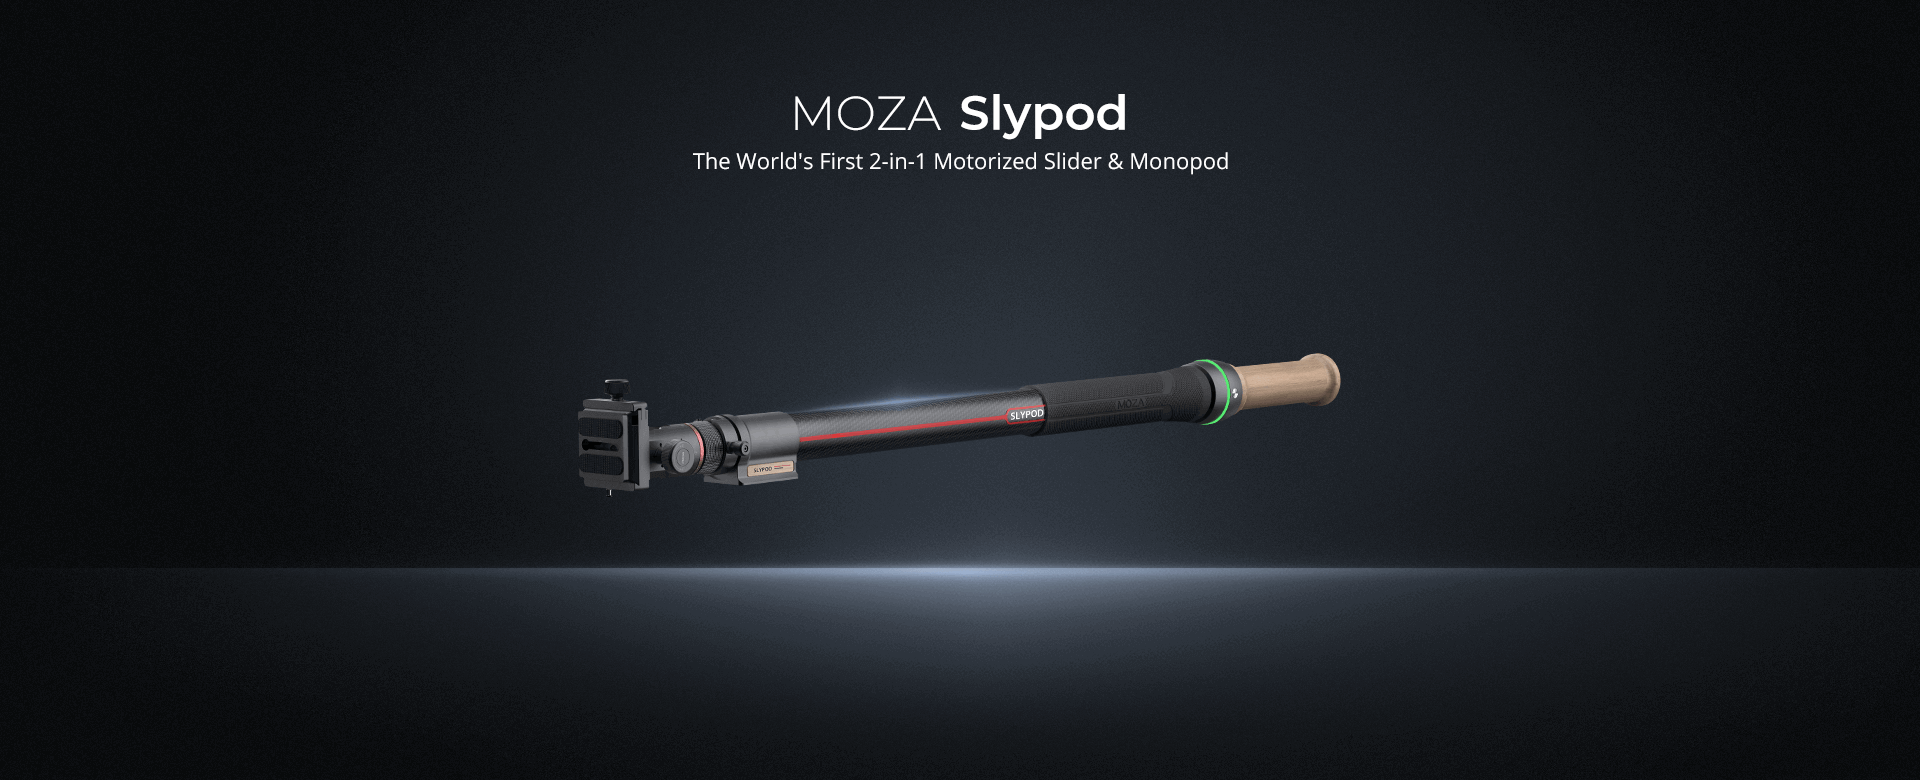 The World's First 2-in-1 Motorized Slider & Monopod